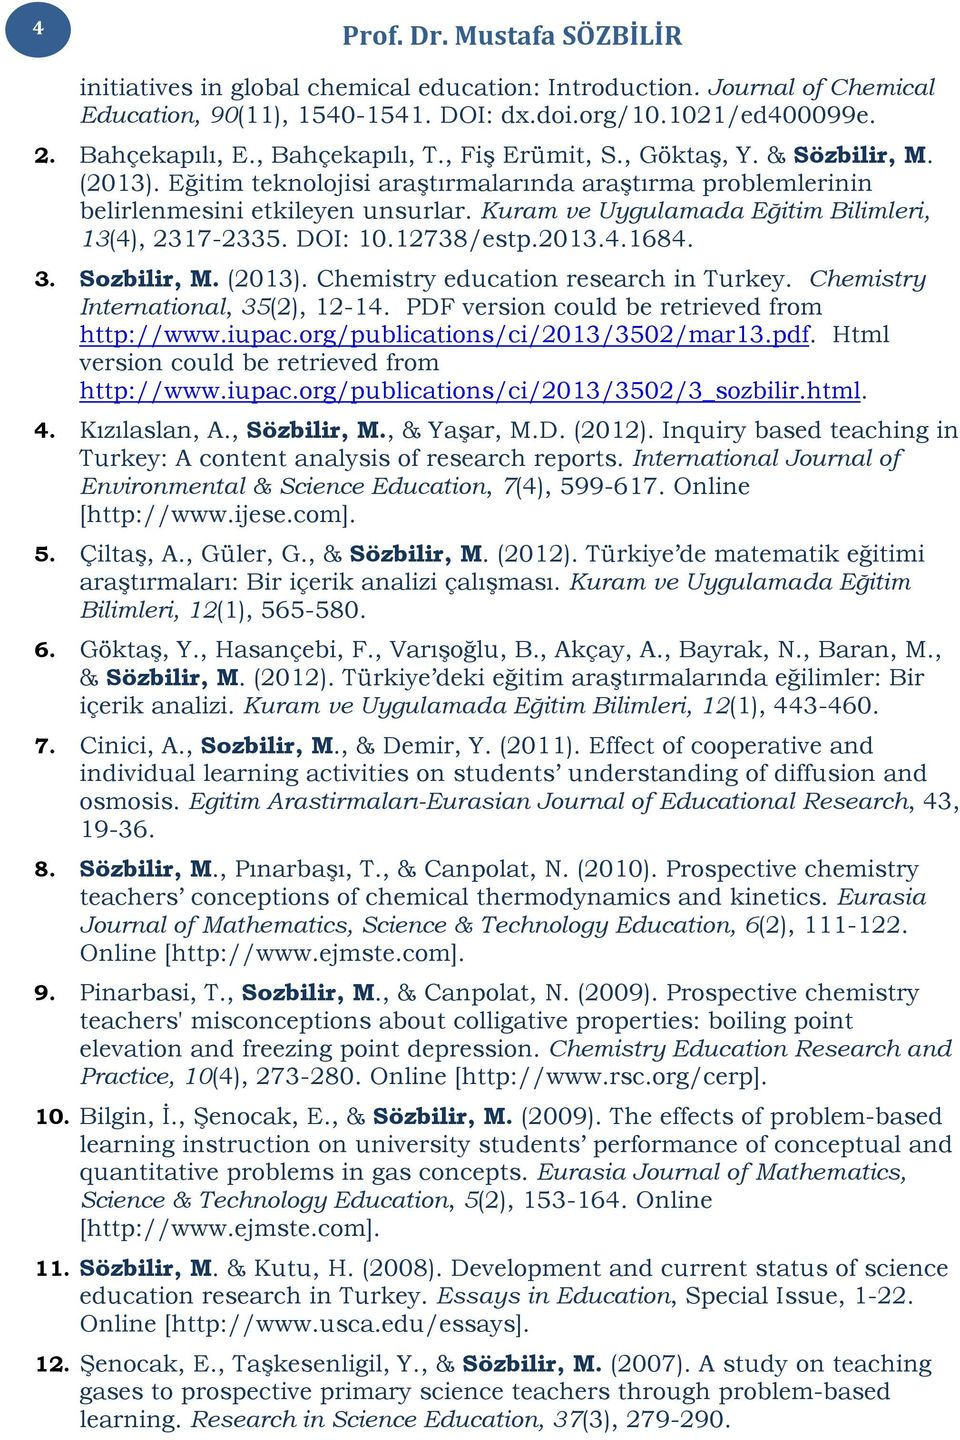 12738/estp.2013.4.1684. 3. Sozbilir, M. (2013). Chemistry education research in Turkey. Chemistry International, 35(2), 12-14. PDF version could be retrieved from http://www.iupac.